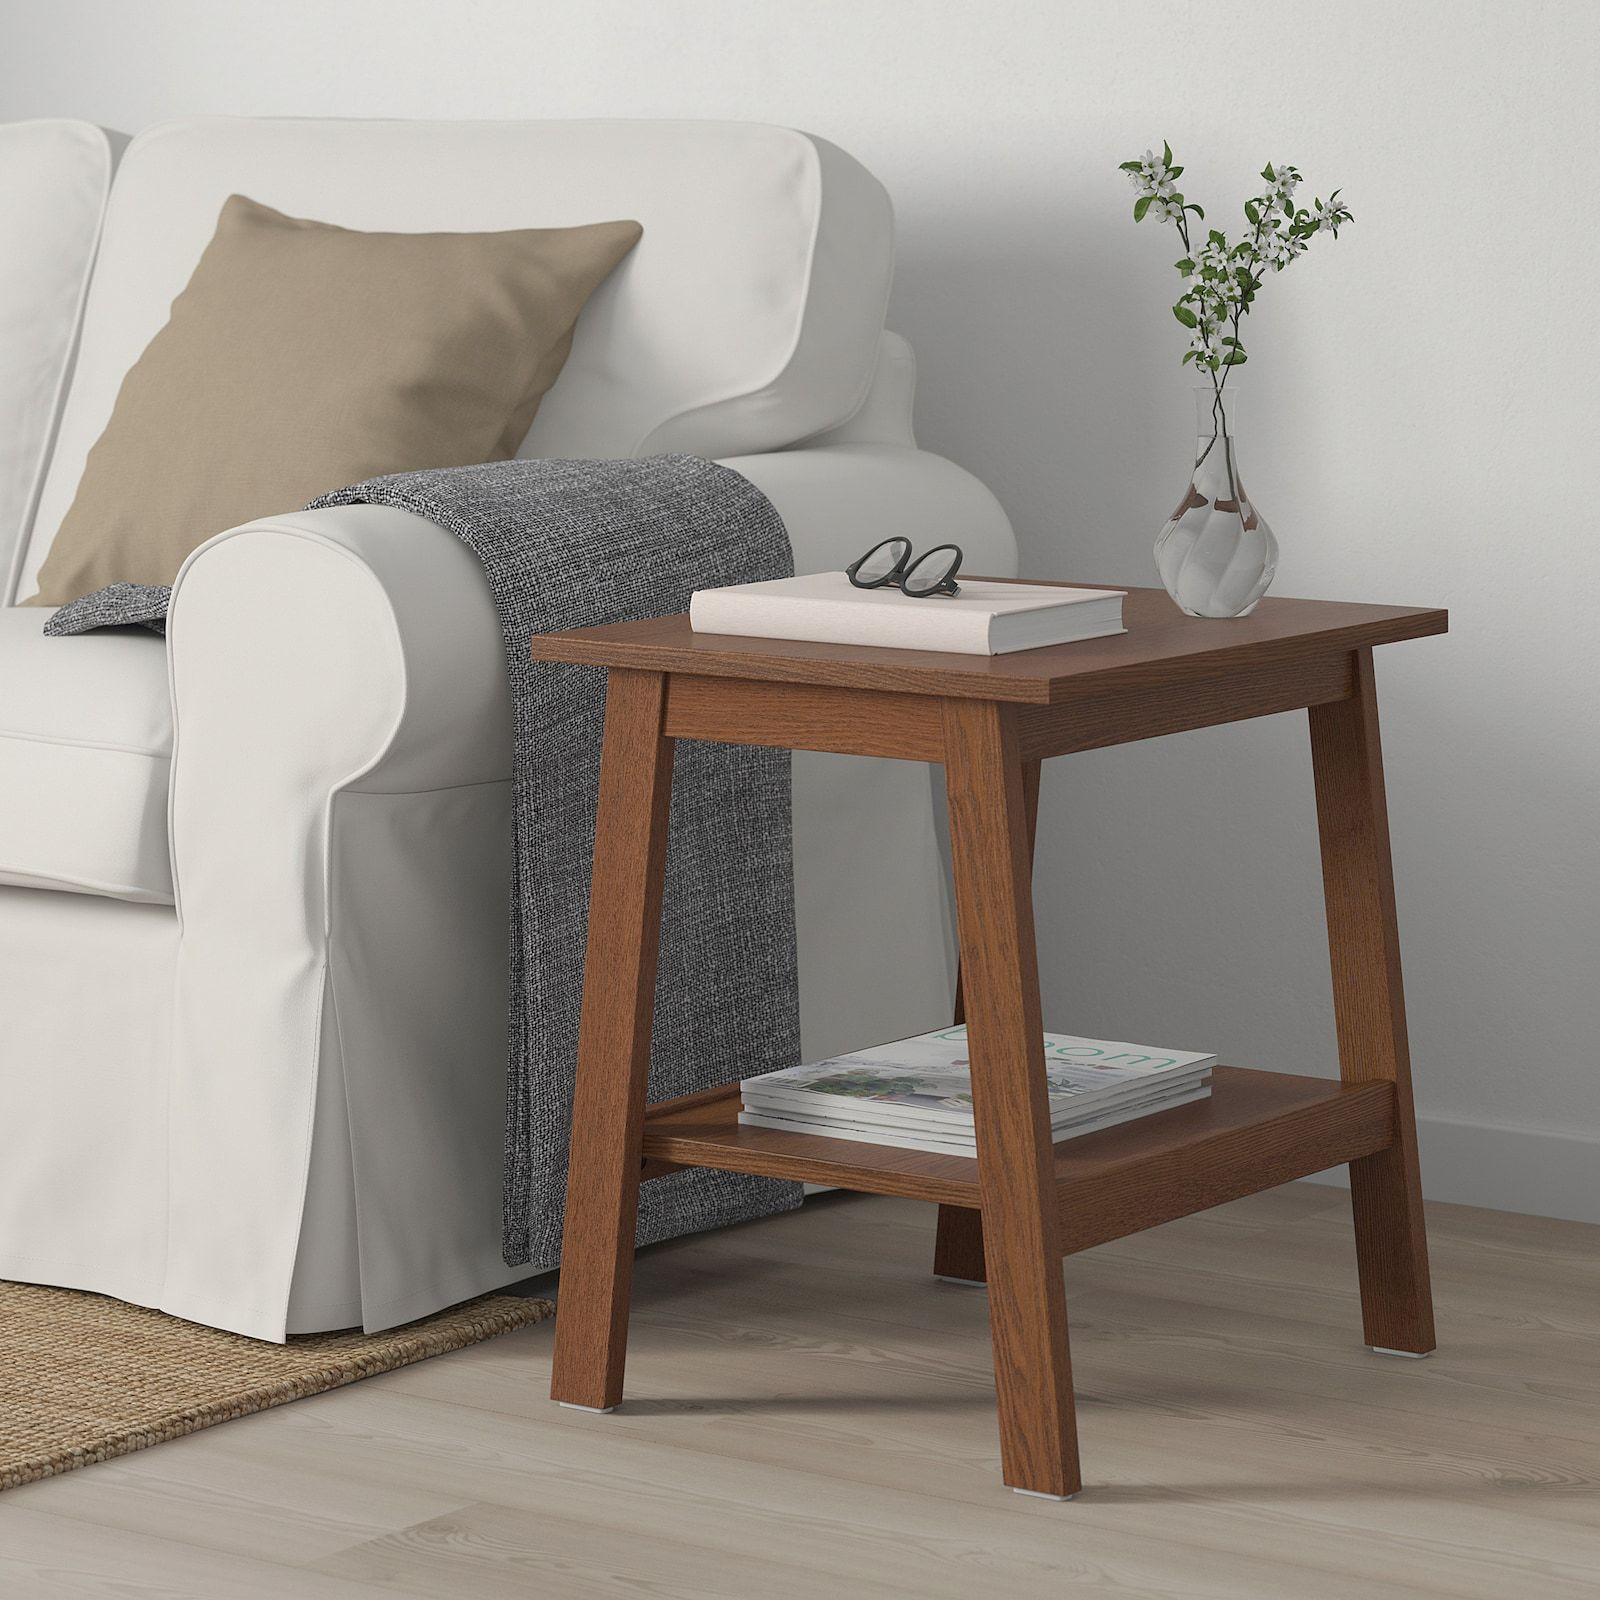 Lunnarp Side Table Brown 21 5 8x17 3 4 Ikea In 2020 Living Room Side Table Ikea Side Table Wooden Side Table #wood #side #tables #for #living #room